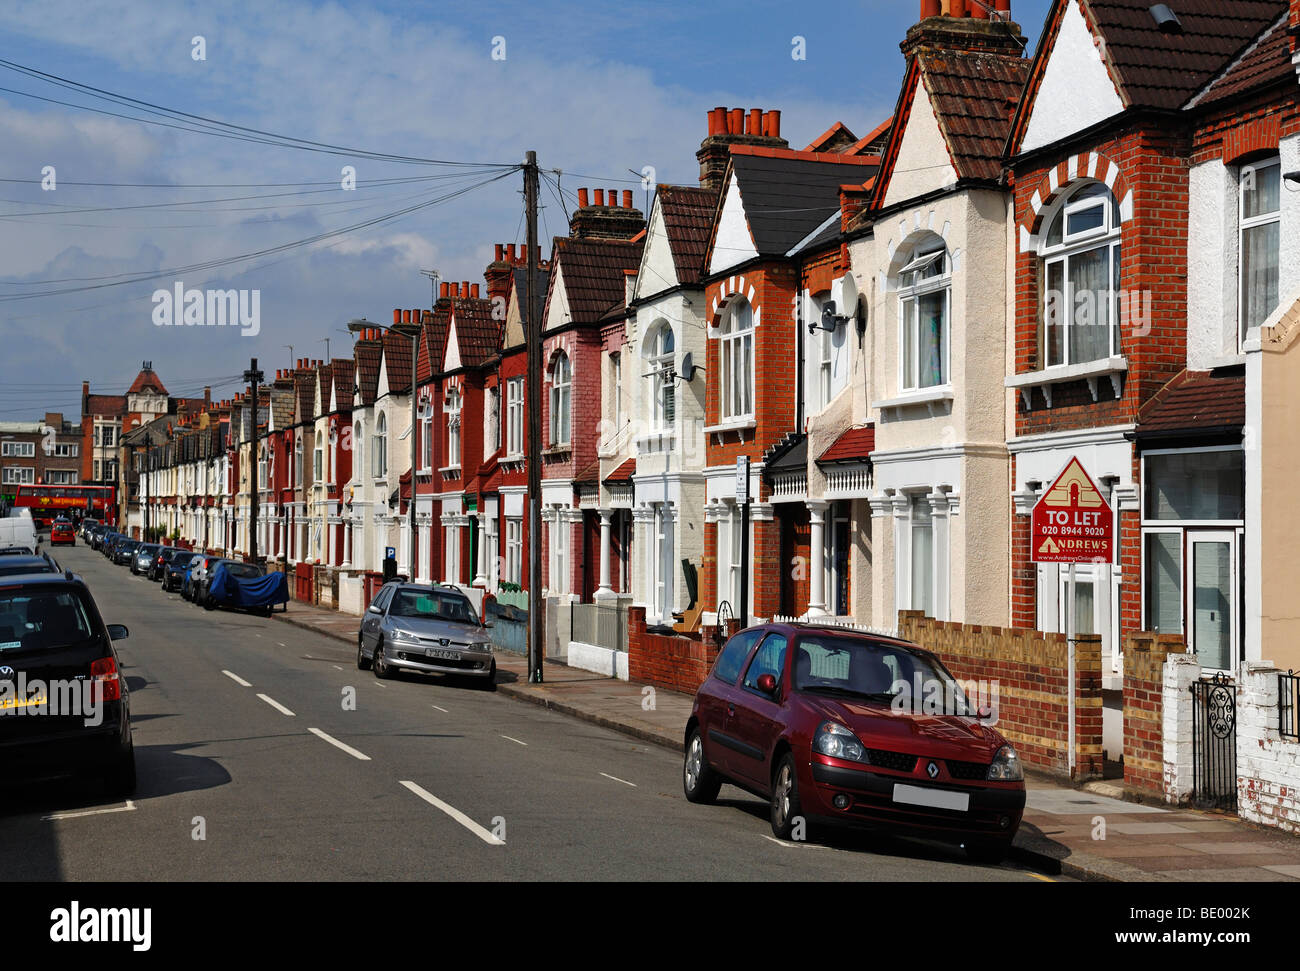 Typical English terraced houses with telephone lines, Undine Street, Tooting Broadway, London, England, Europe Stock Photo